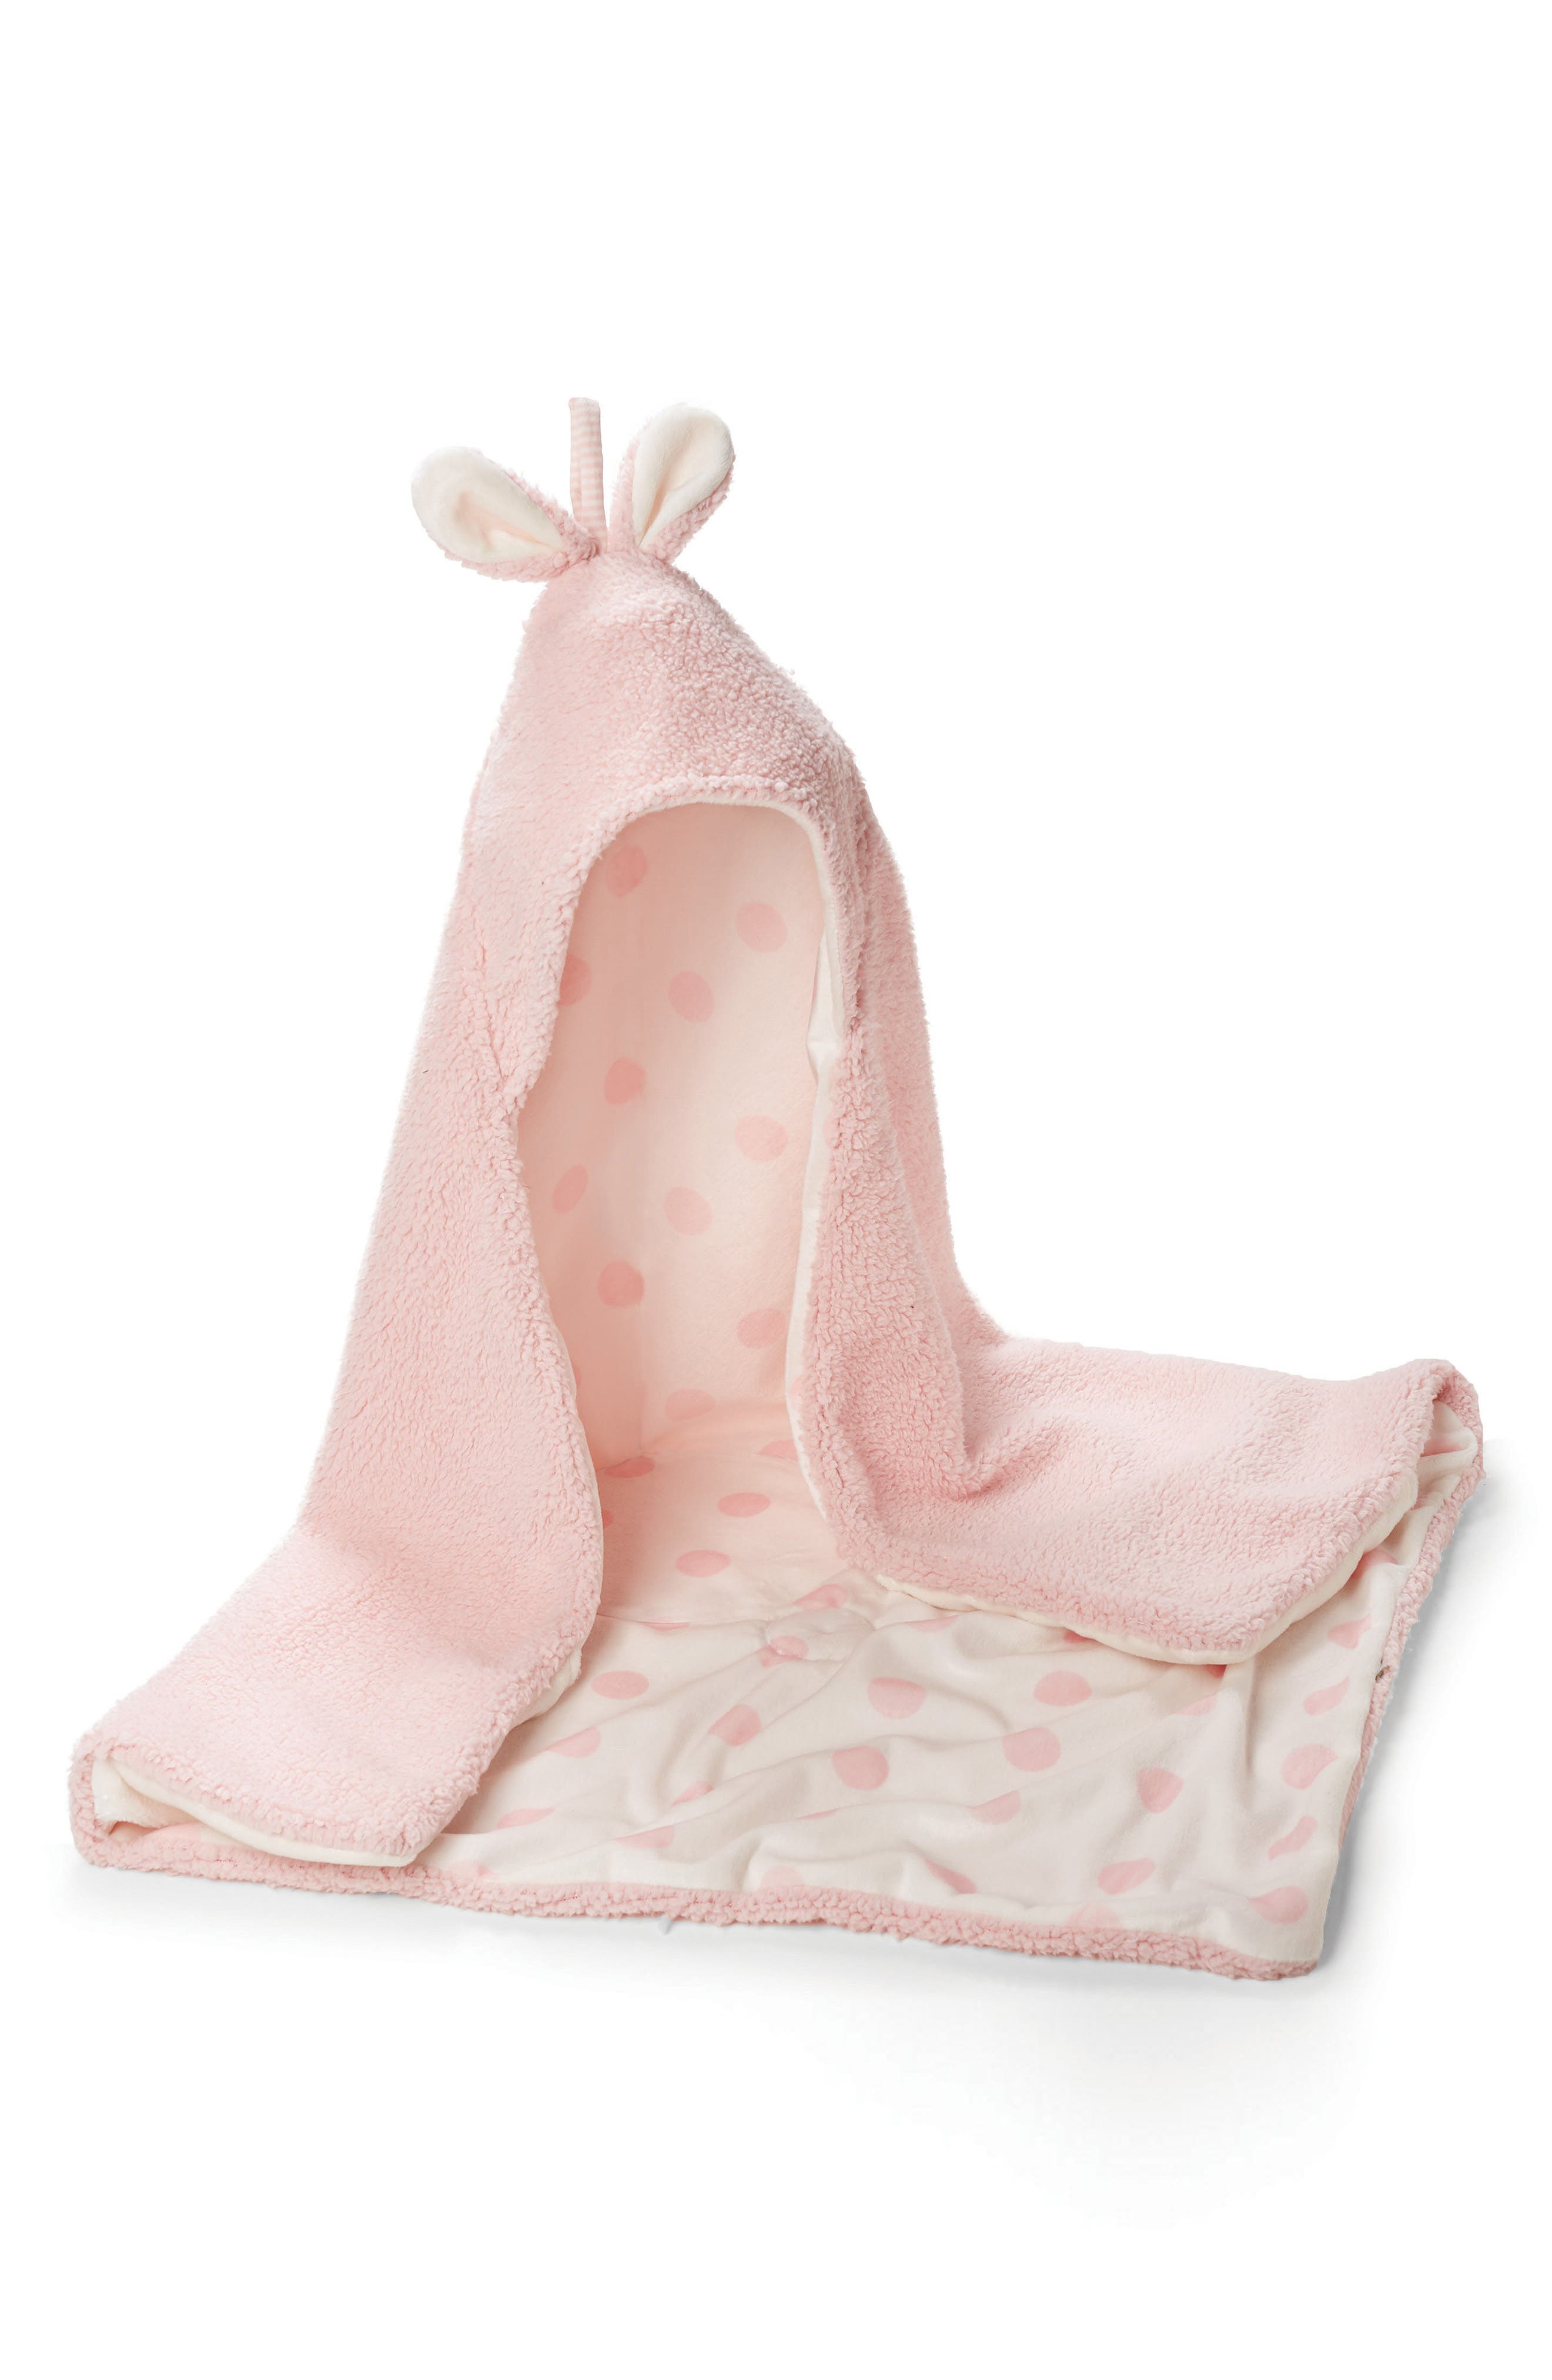 Bunnies By The Bay Bunny Hooded Blanket